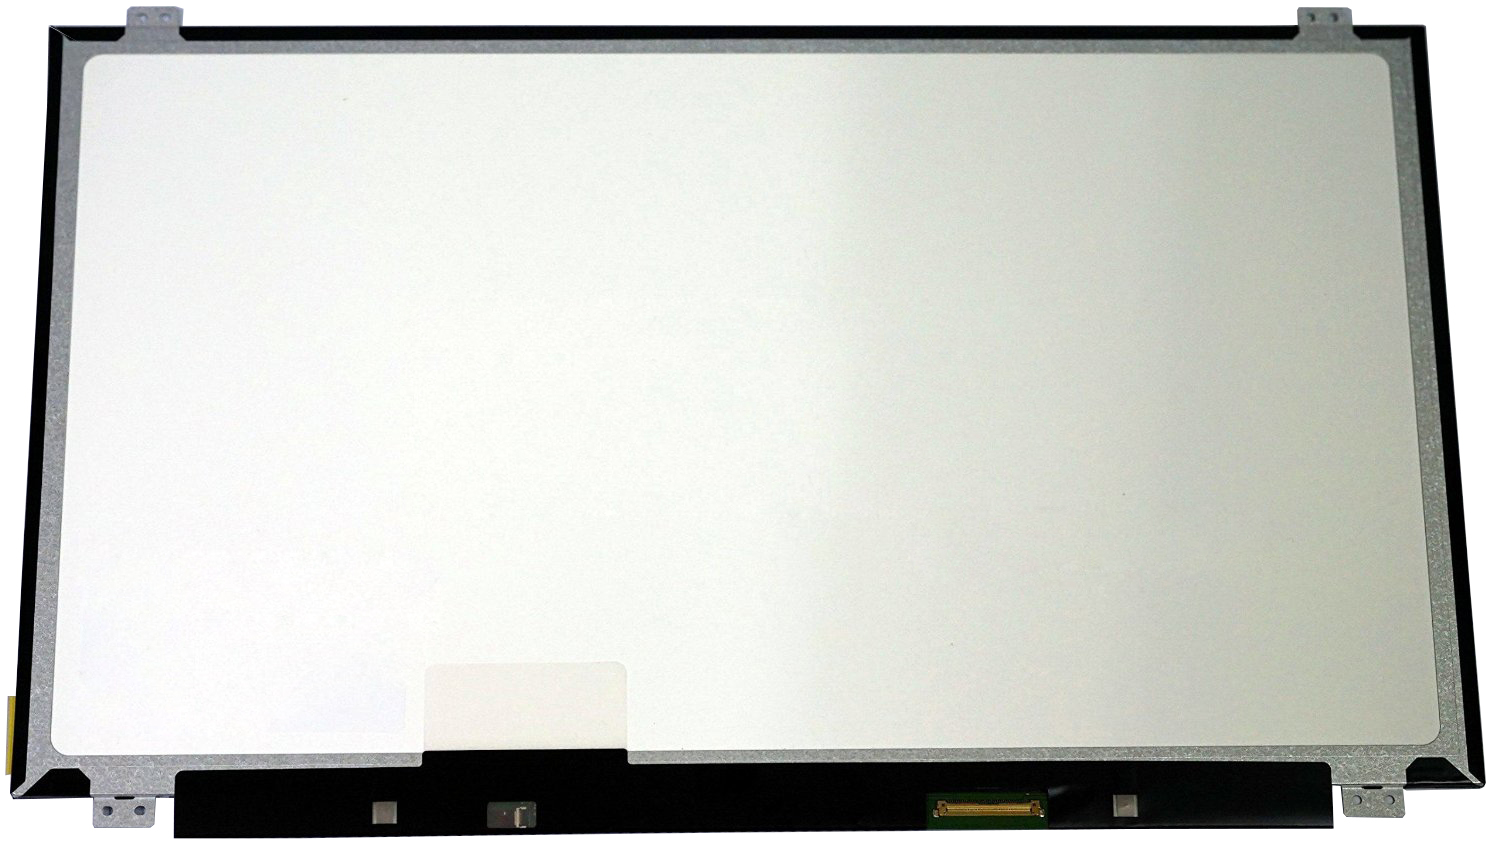 QuYing LAPTOP LCD SCREEN For ACER ASPIRE 5553 5553G 5534 5538 5538G 5943G SERIES  15.6 inch, 1366X768, 40 pin, N) quying laptop lcd screen for acer extensa 5235 as5551 series 15 6 inch 1366x768 40pin tk